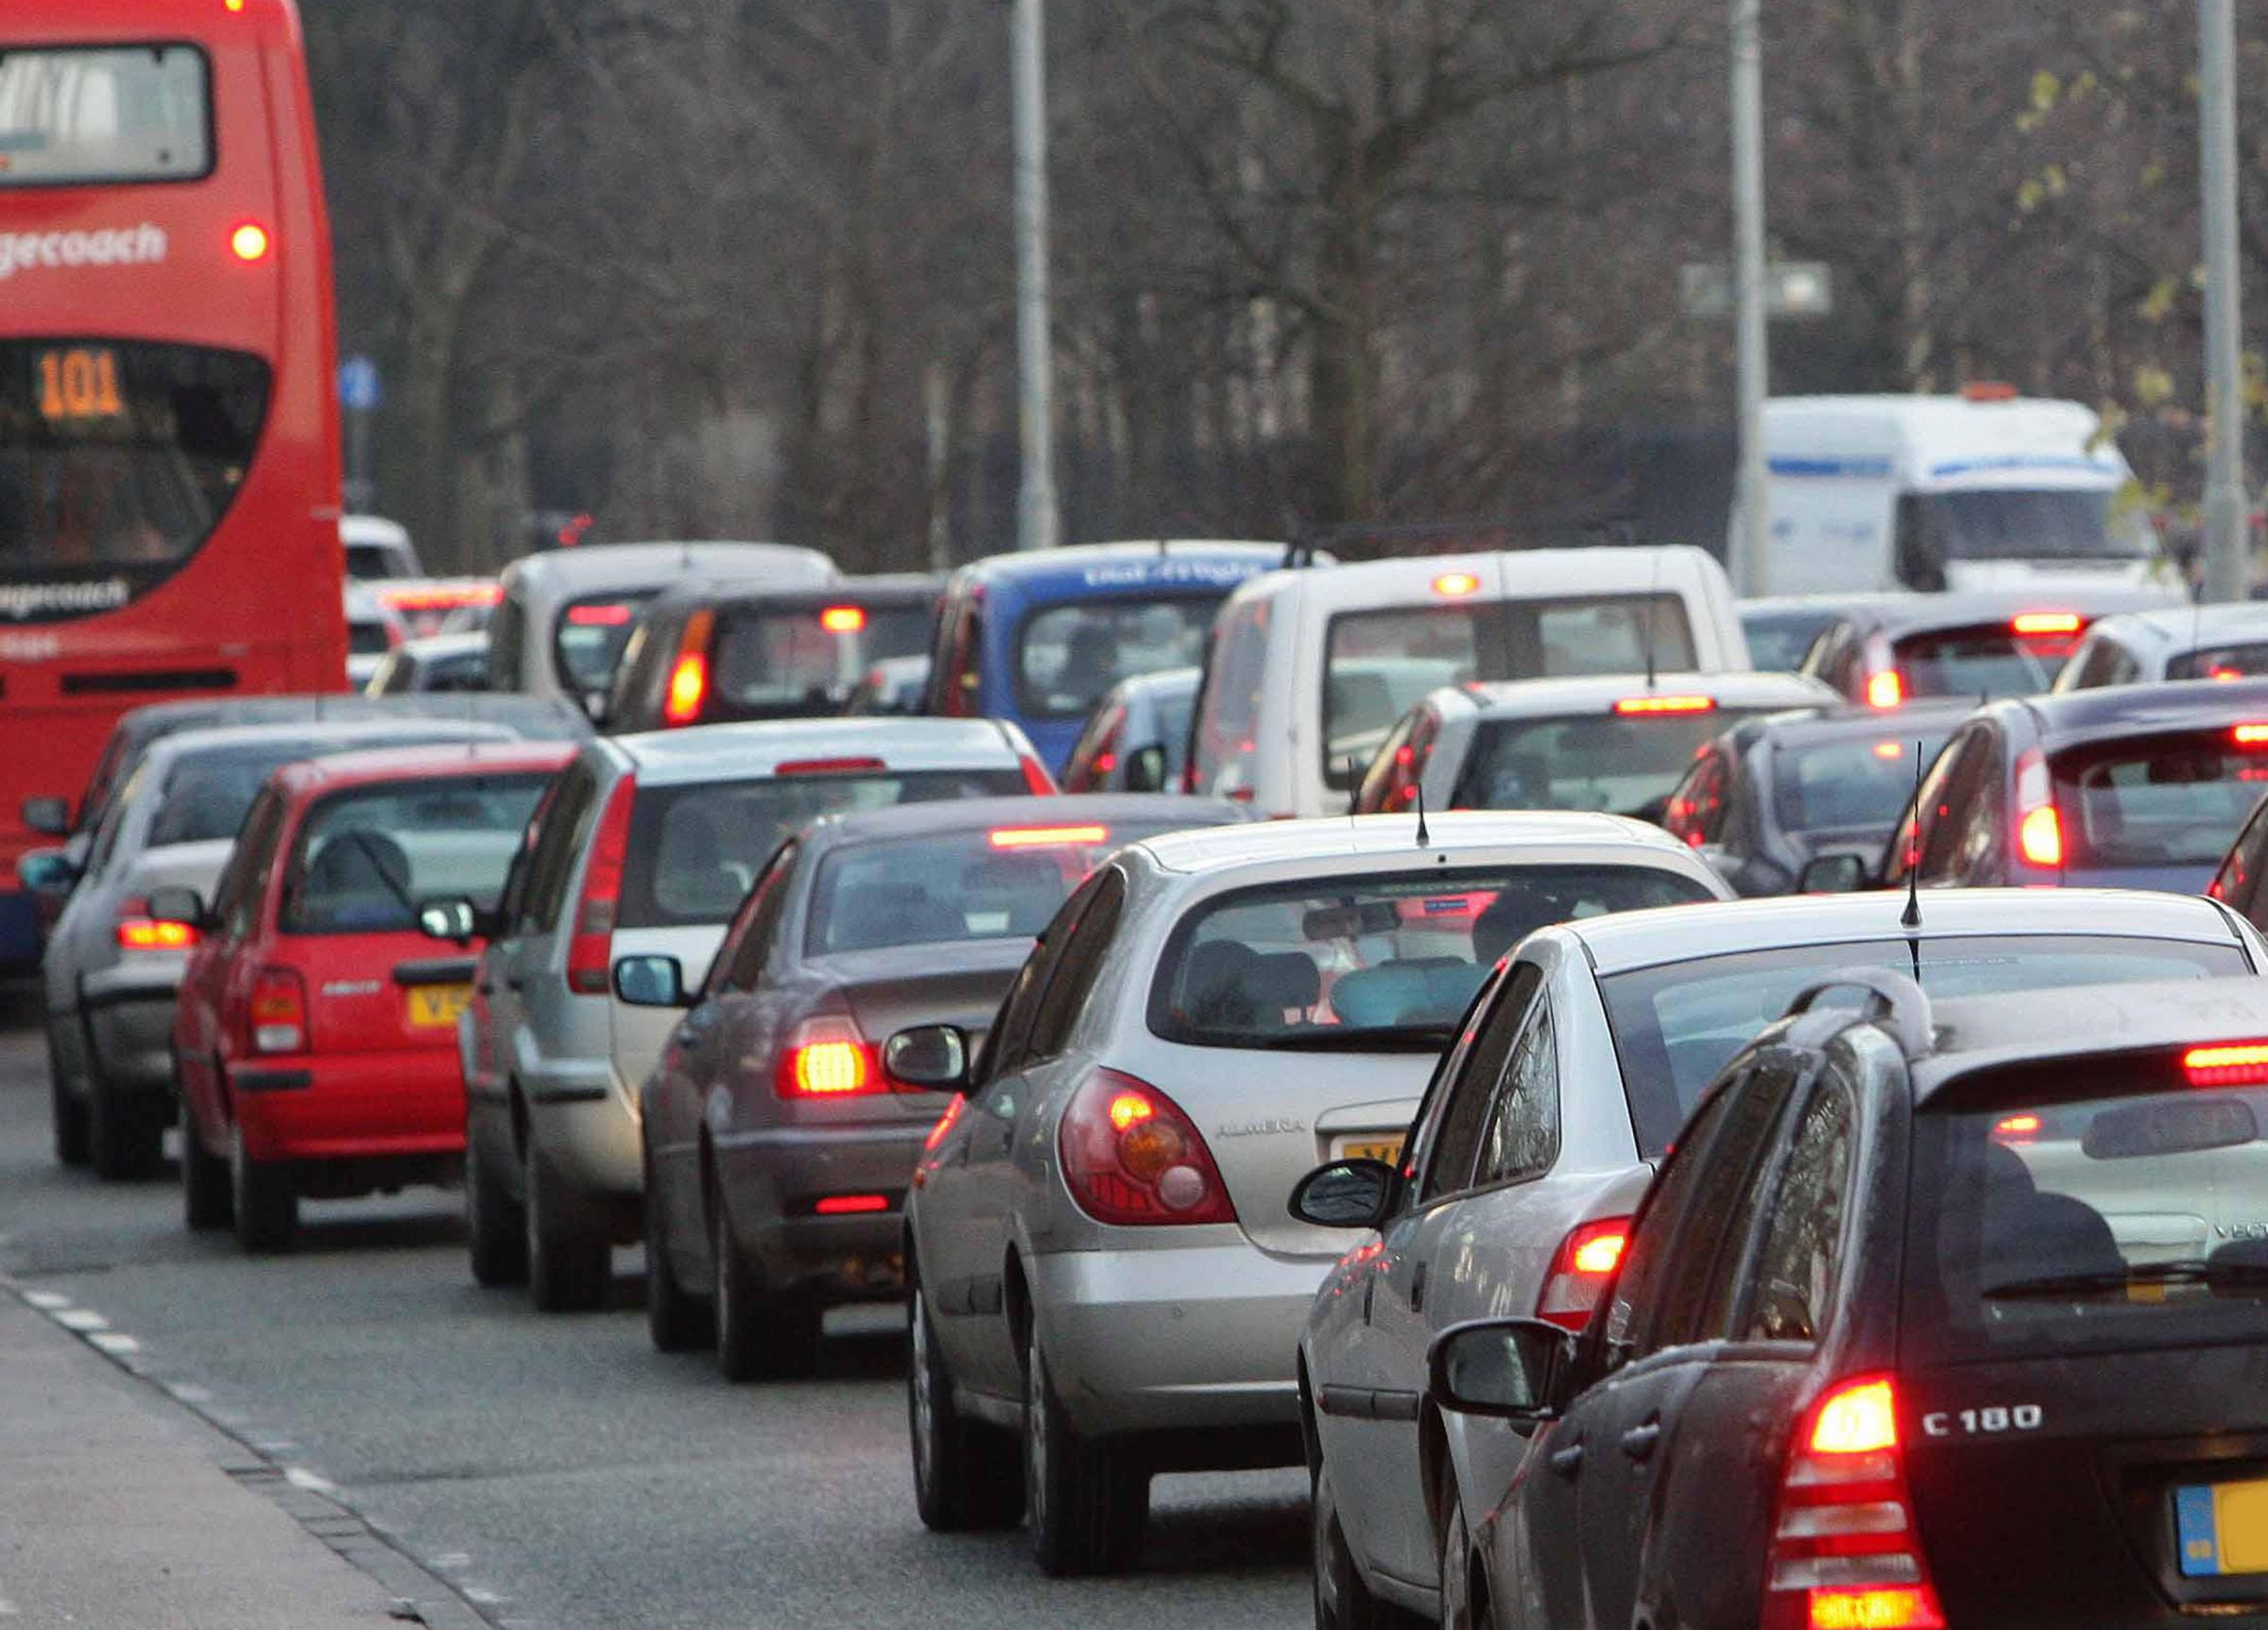 File photo dated 10/12/08 of early morning road congestion which costs the UK economy nearly £8 billion last year, according to new analysis. PRESS ASSOCIATION Photo. Issue date: Tuesday February 12, 2019. Transport data firm Inrix calculated